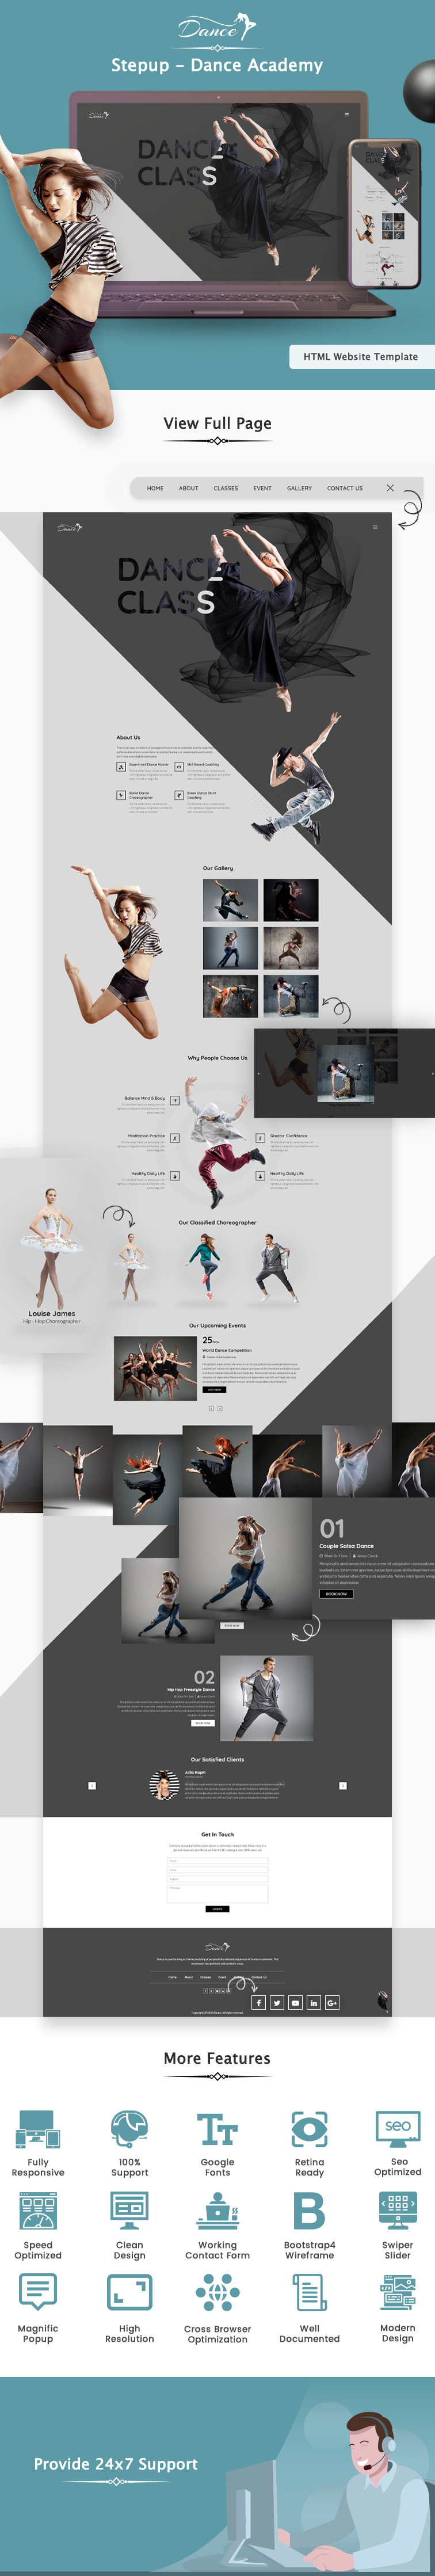 StepUp - Dance Academy Multi Page HTML Website Template